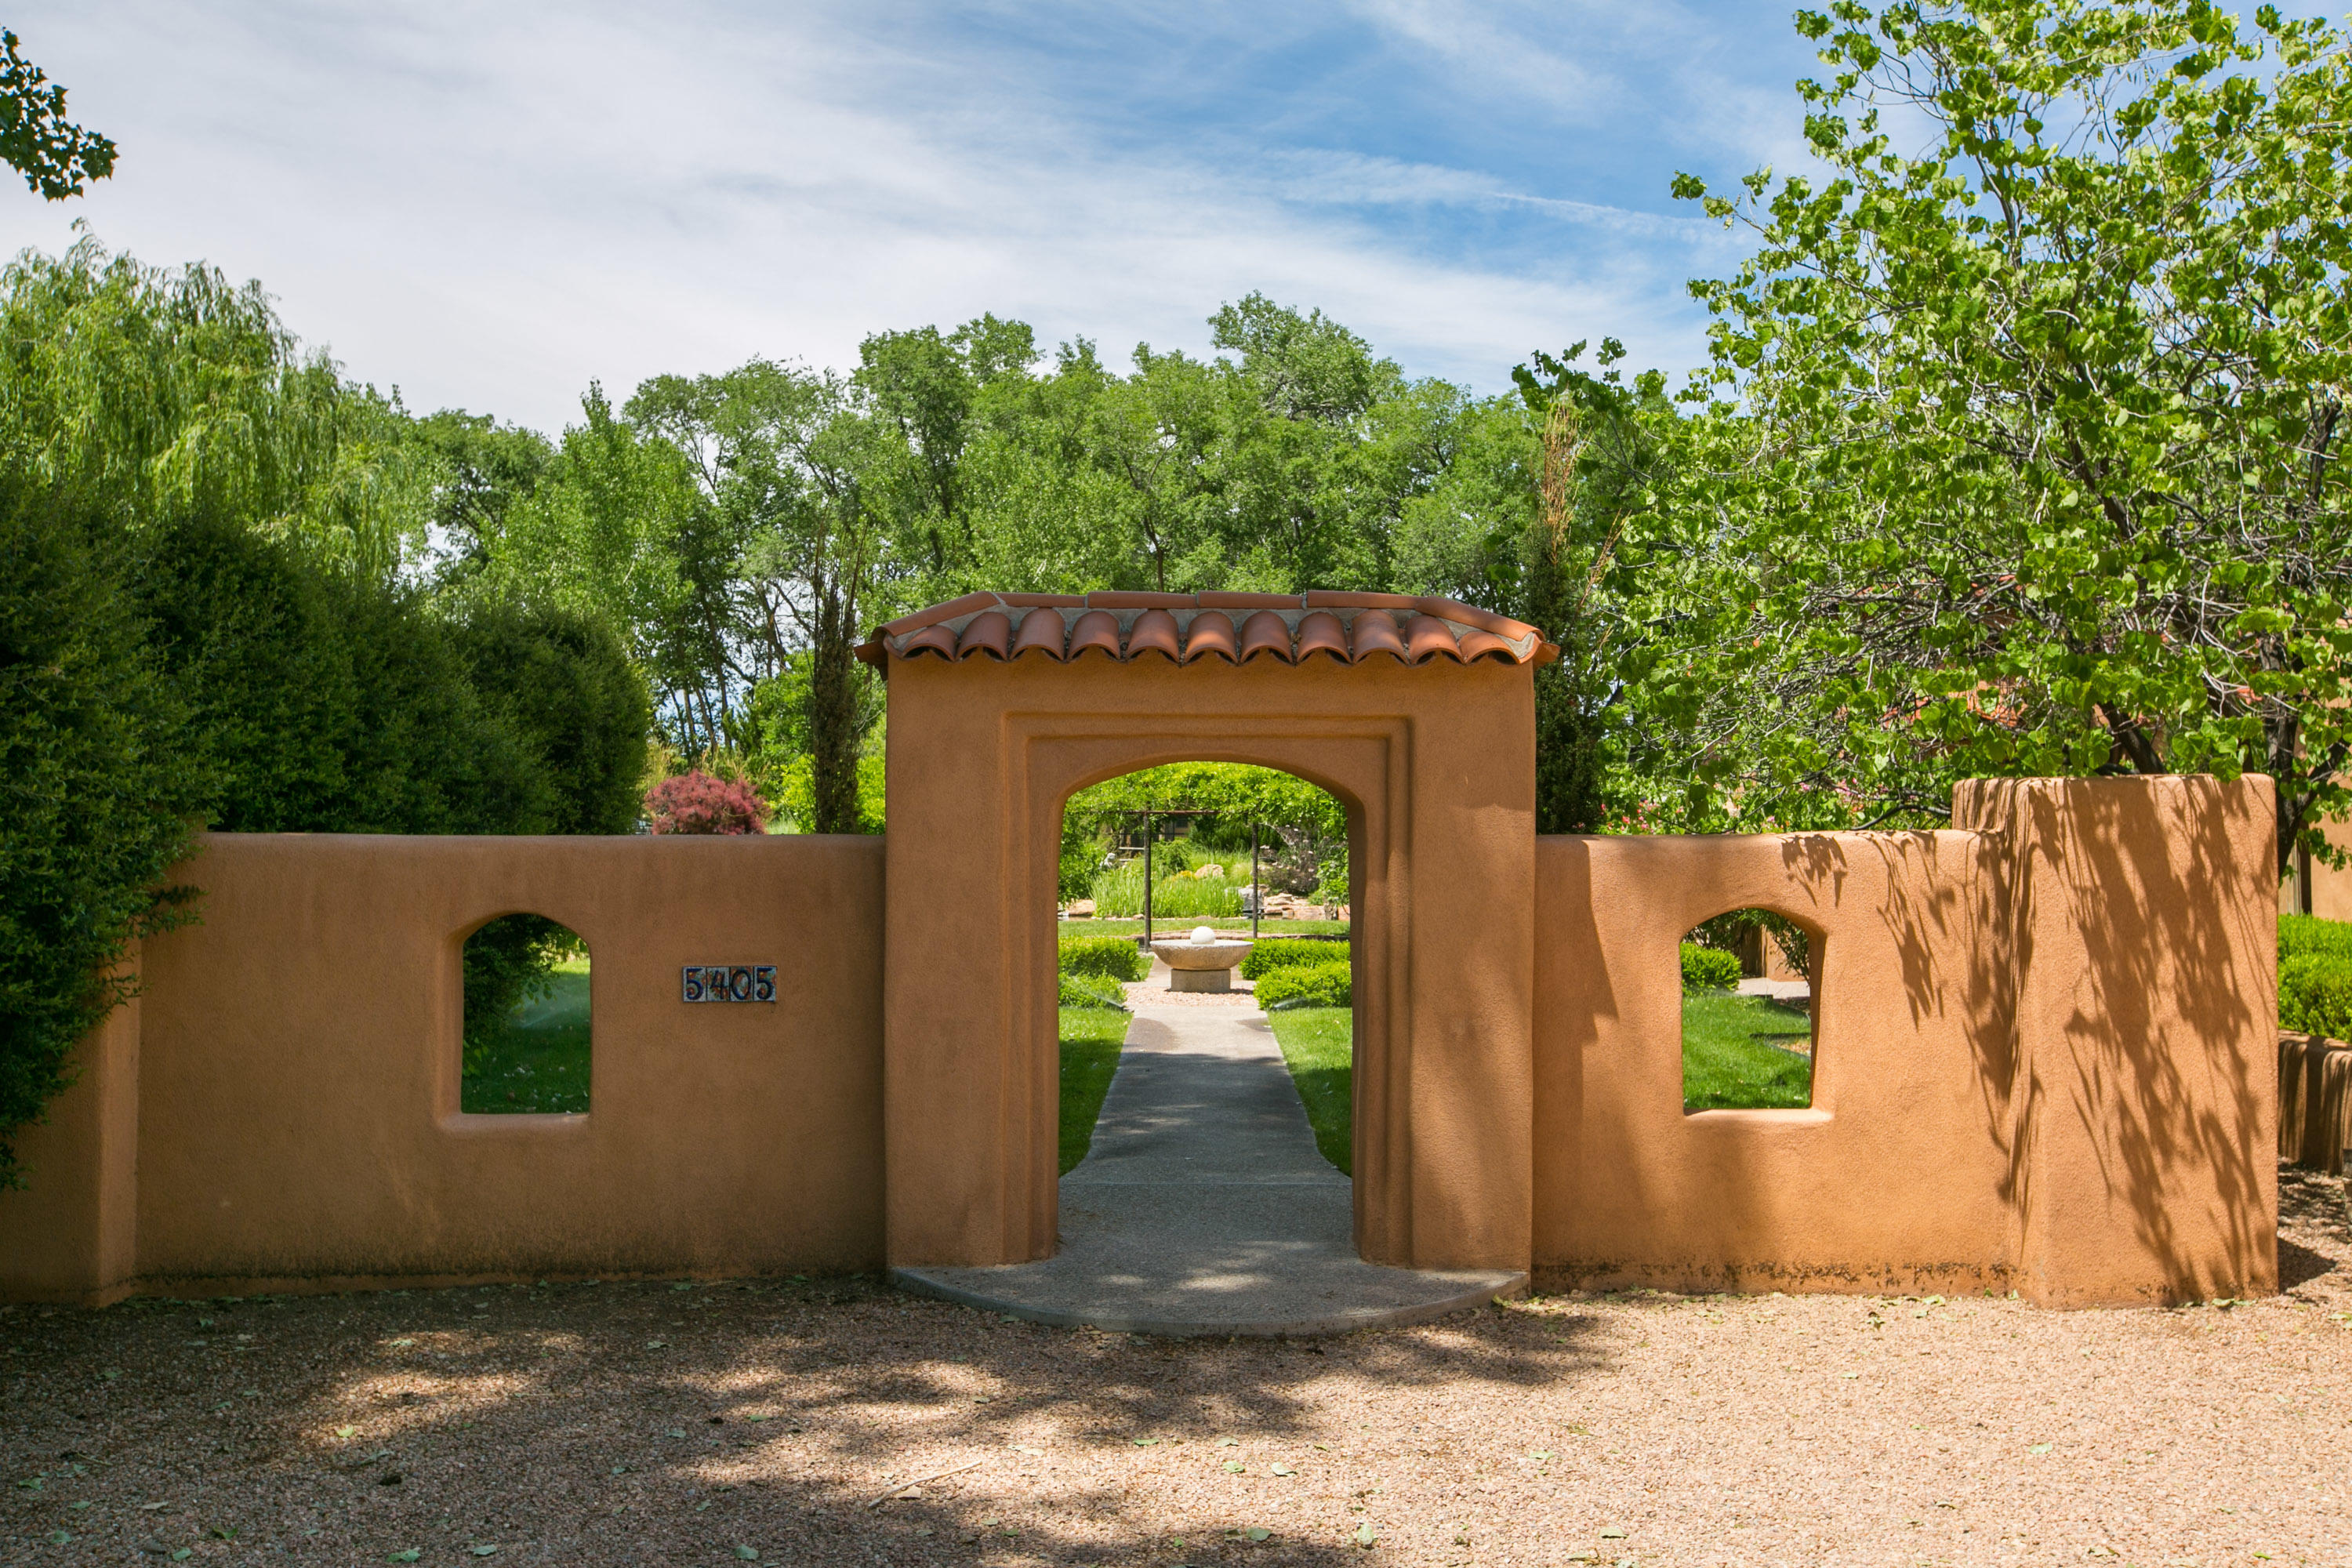 Spectacular hacienda-style home on a breathtakingly manicured lot off Rio Grande. John Calvin adobe, situated on an acre with mature trees, numerous courtyards, and plenty of privacy. Enter through the resort-style courtyard to a formal living room overlooking the garden and the koi pond. Boasting both a formal dining and a cozy eat-in with kiva fireplaces. Carefully thought-out floor plan with master on north wing and other bedrooms to the south. Kitchen features include: Wolf range, subzero fridge, double-oven, wine cooler, & oversized island. Views of landscaping can be enjoyed through every window in the house. Walled back yard has an ideal location for a pool. Three car garage, radiant heat, travertine tile, & so much more. Call for your private showing.